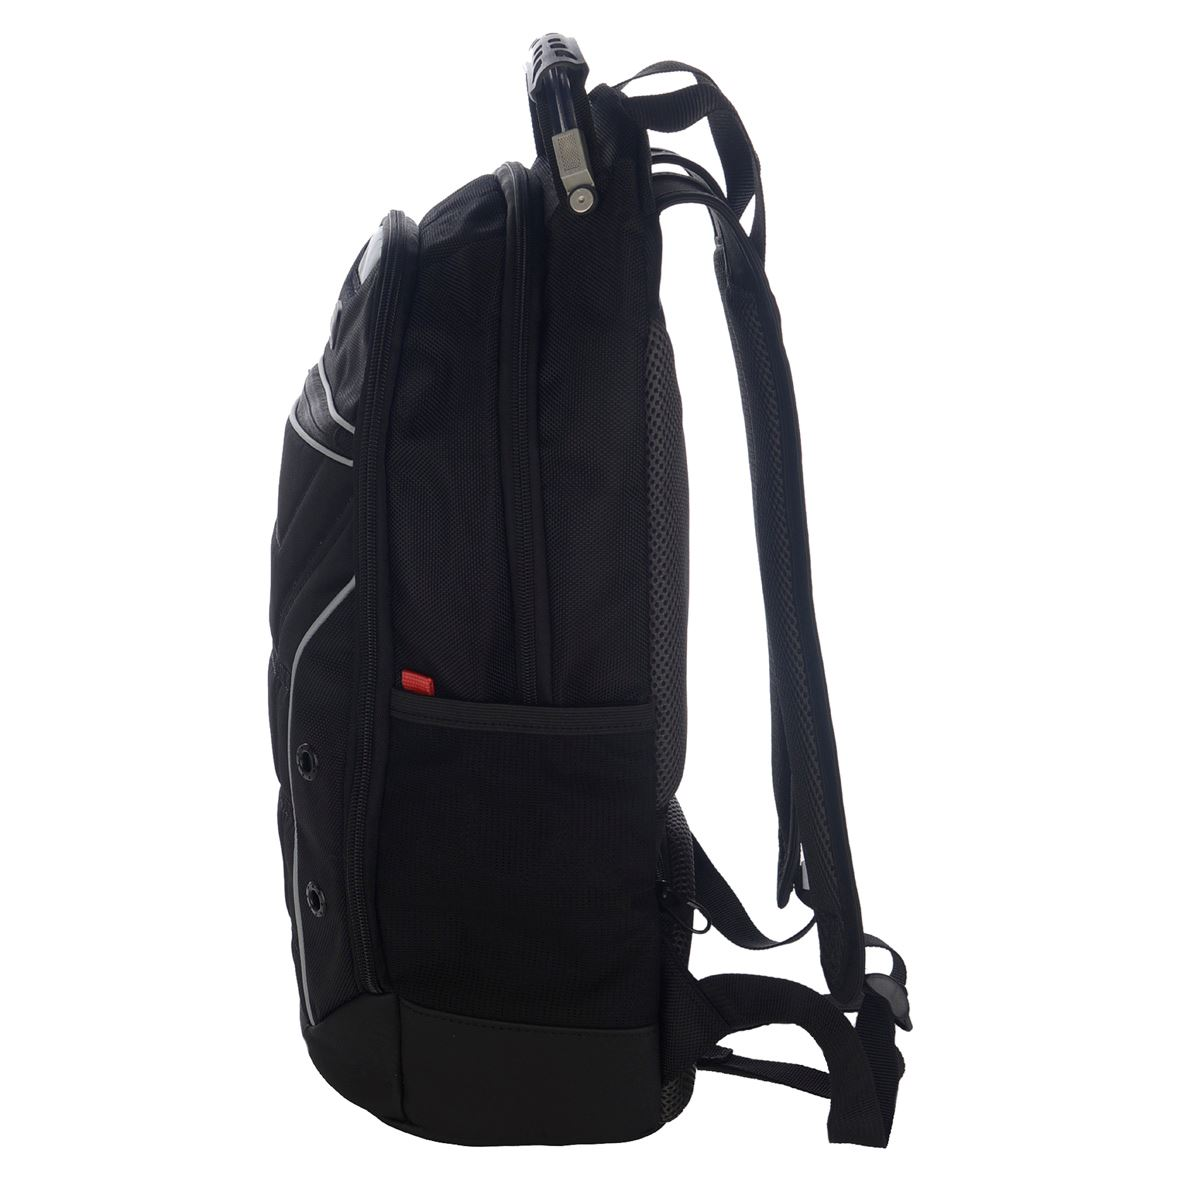 Laptop And Tablet Backpack qTyFmrab